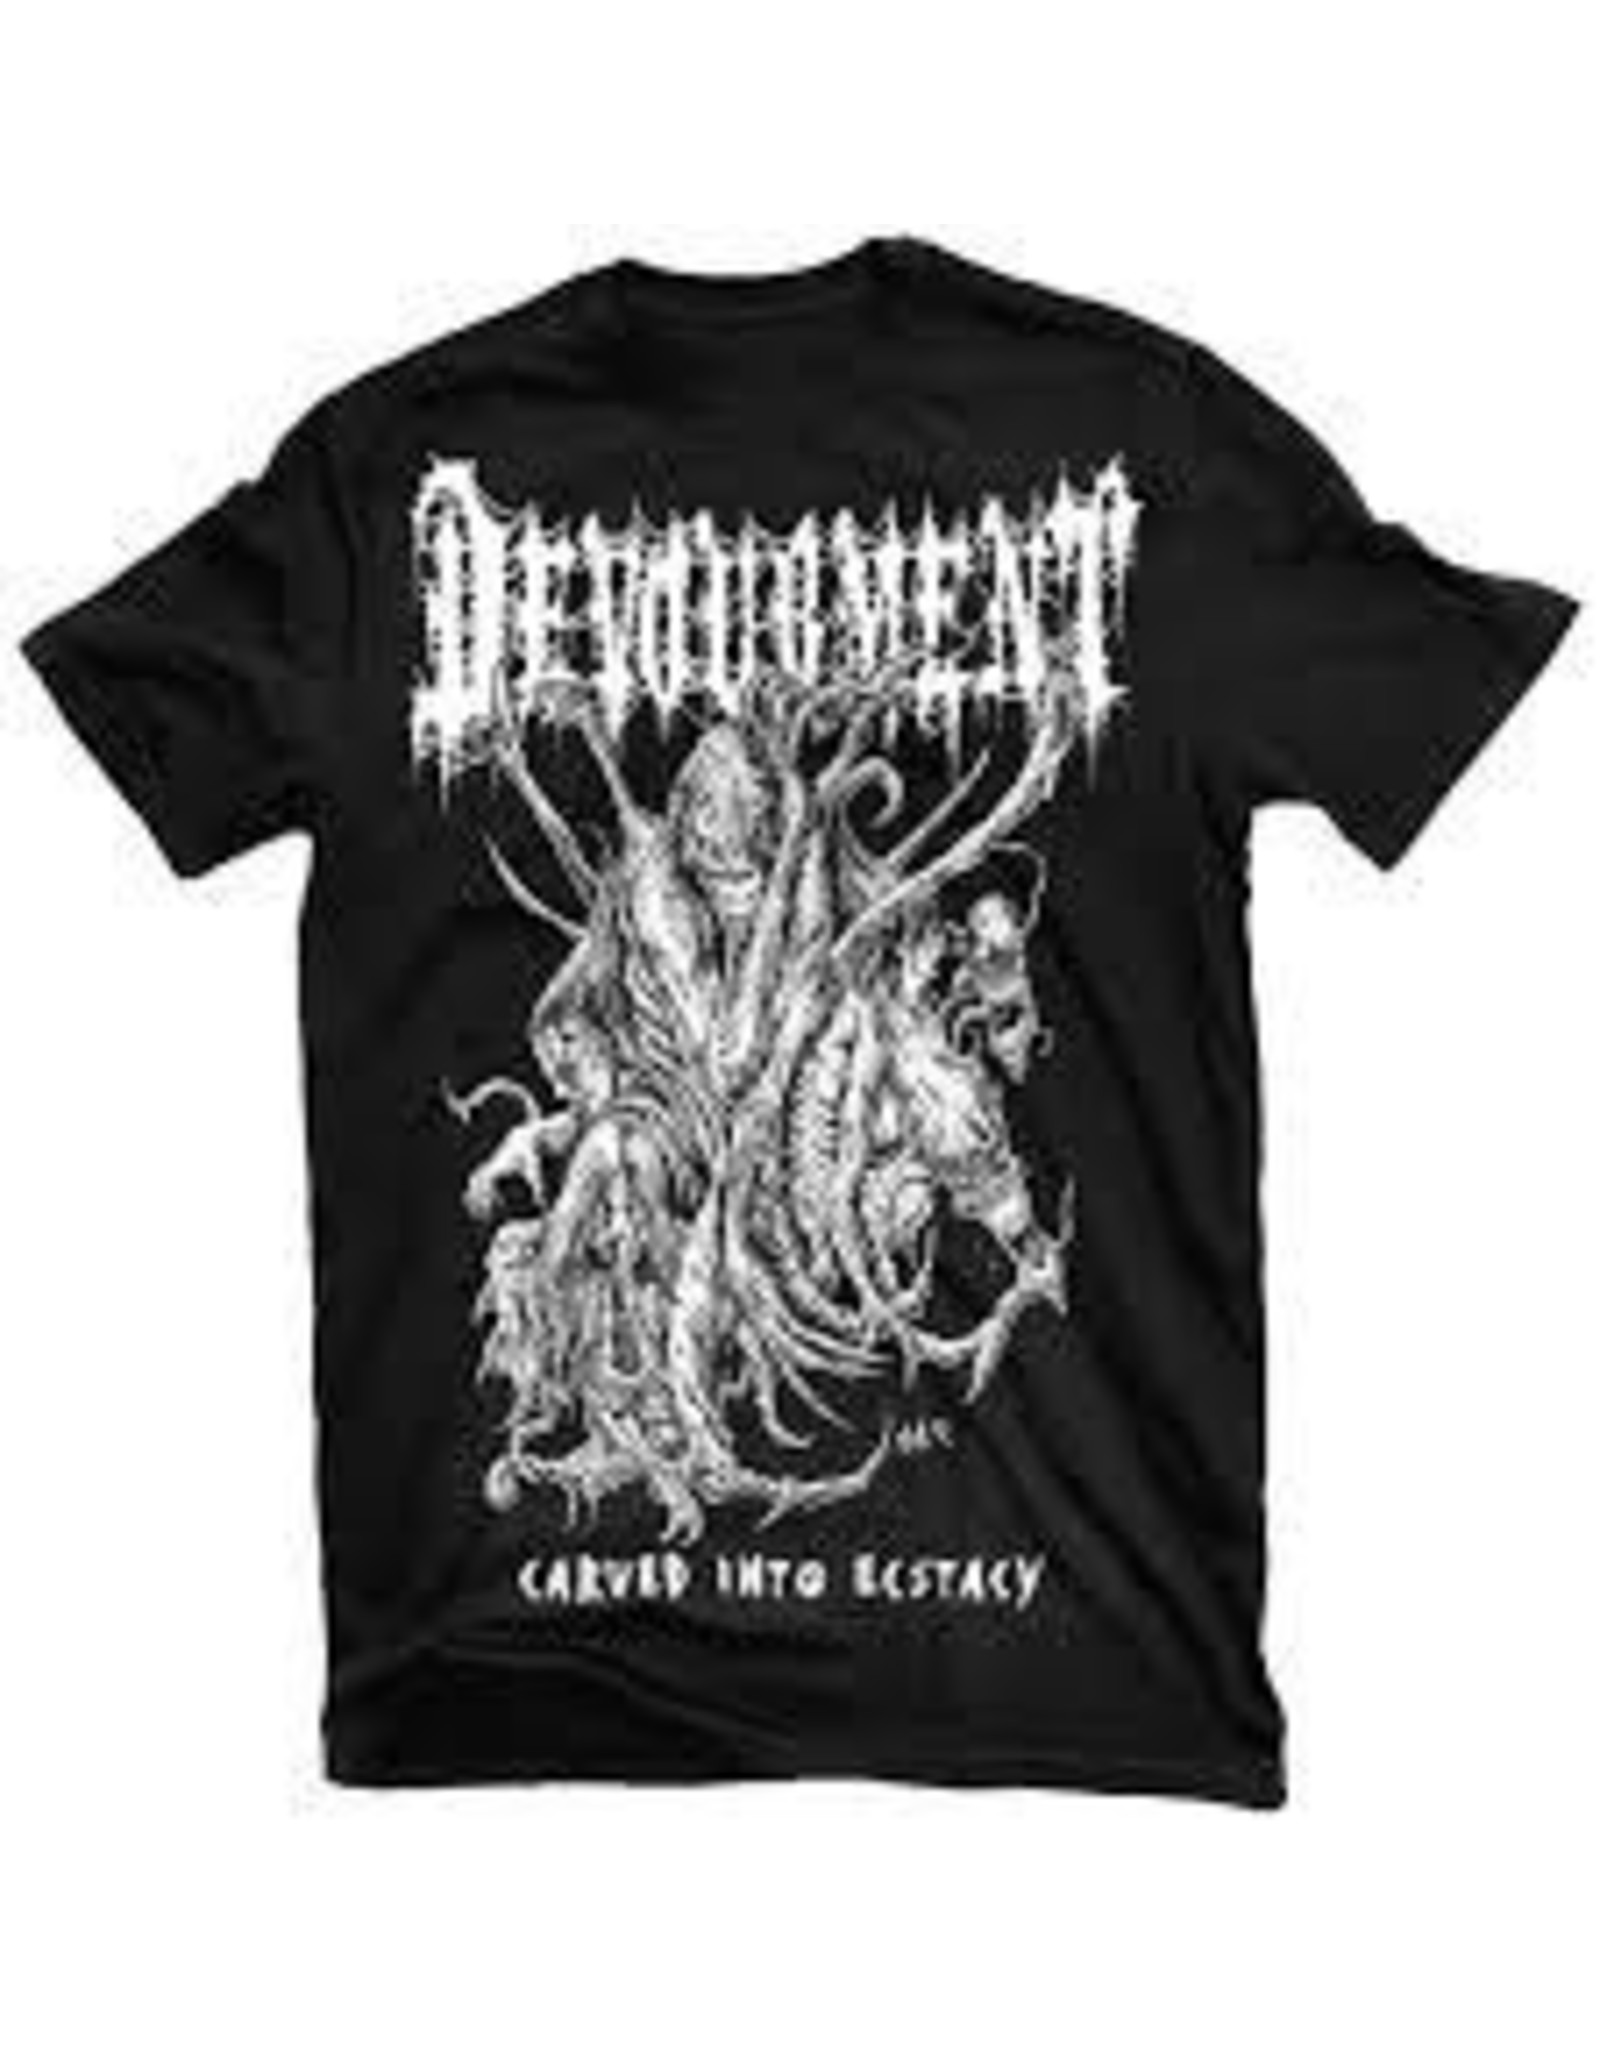 Devourement Carved Into Ecstacy Shirt Medium